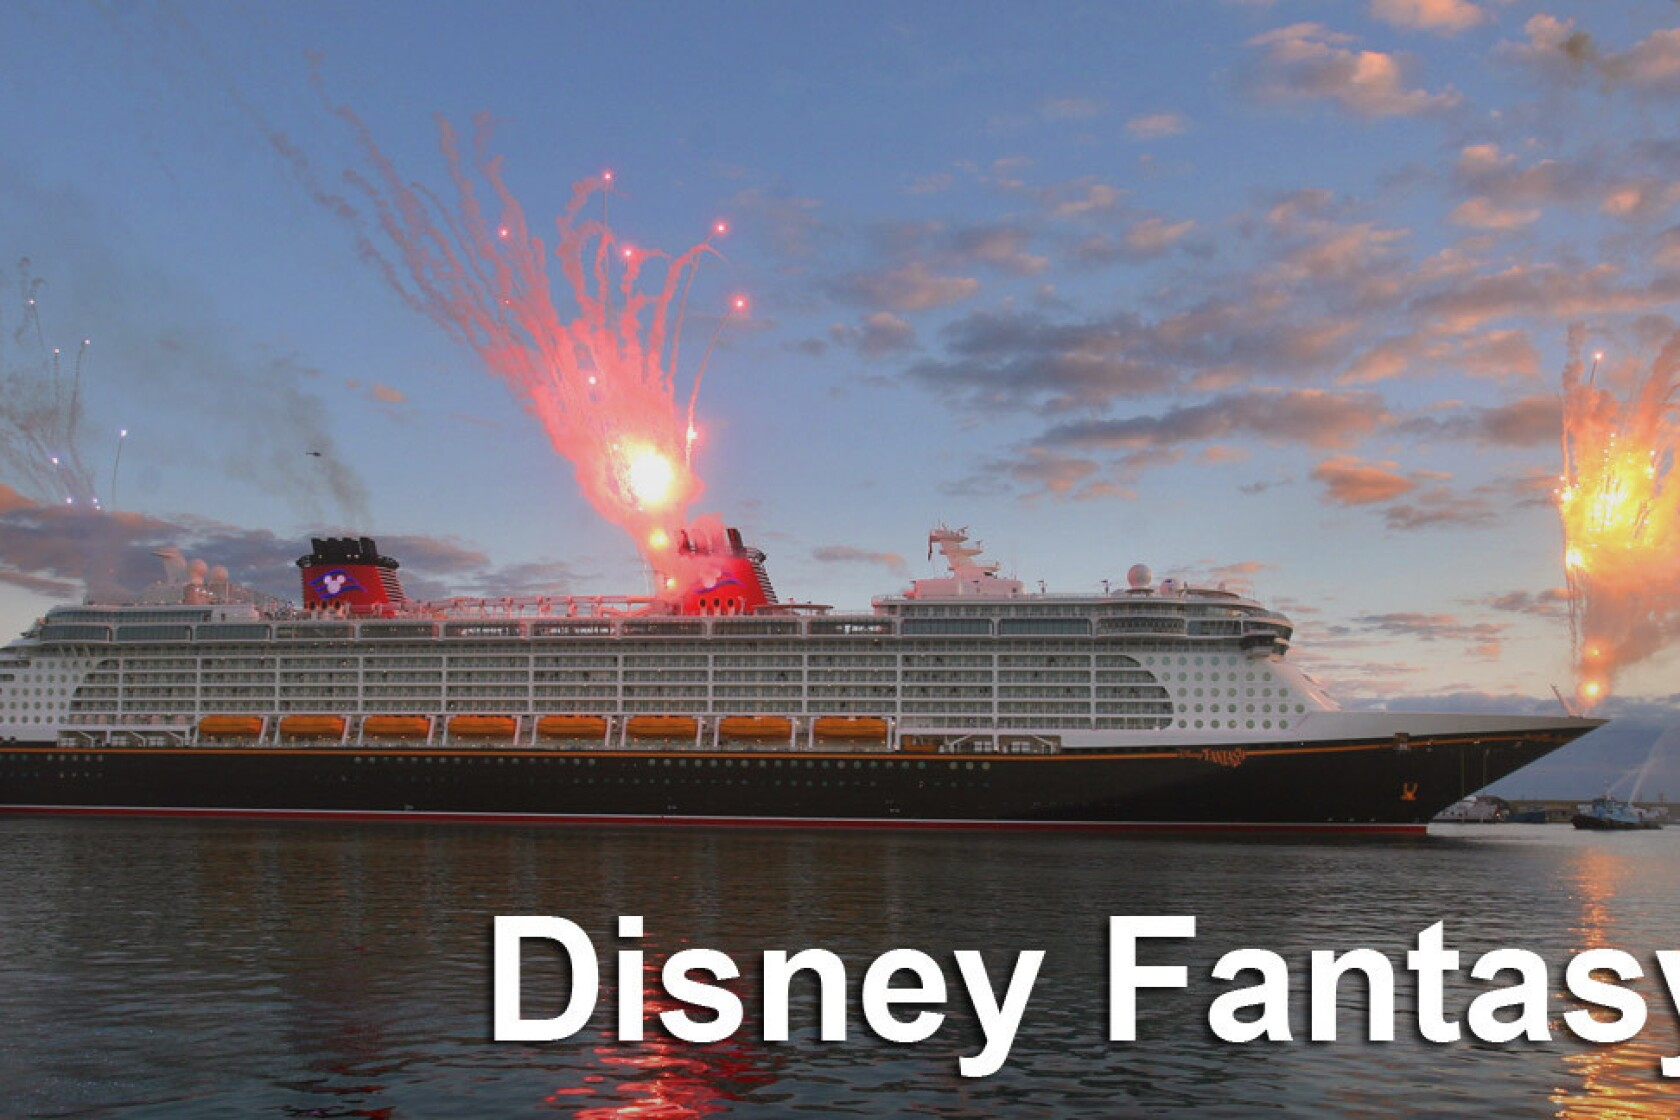 Disney Cruise Summer 2020.Disney Cruise Line Adds Greece To Summer 2020 Plans Expands